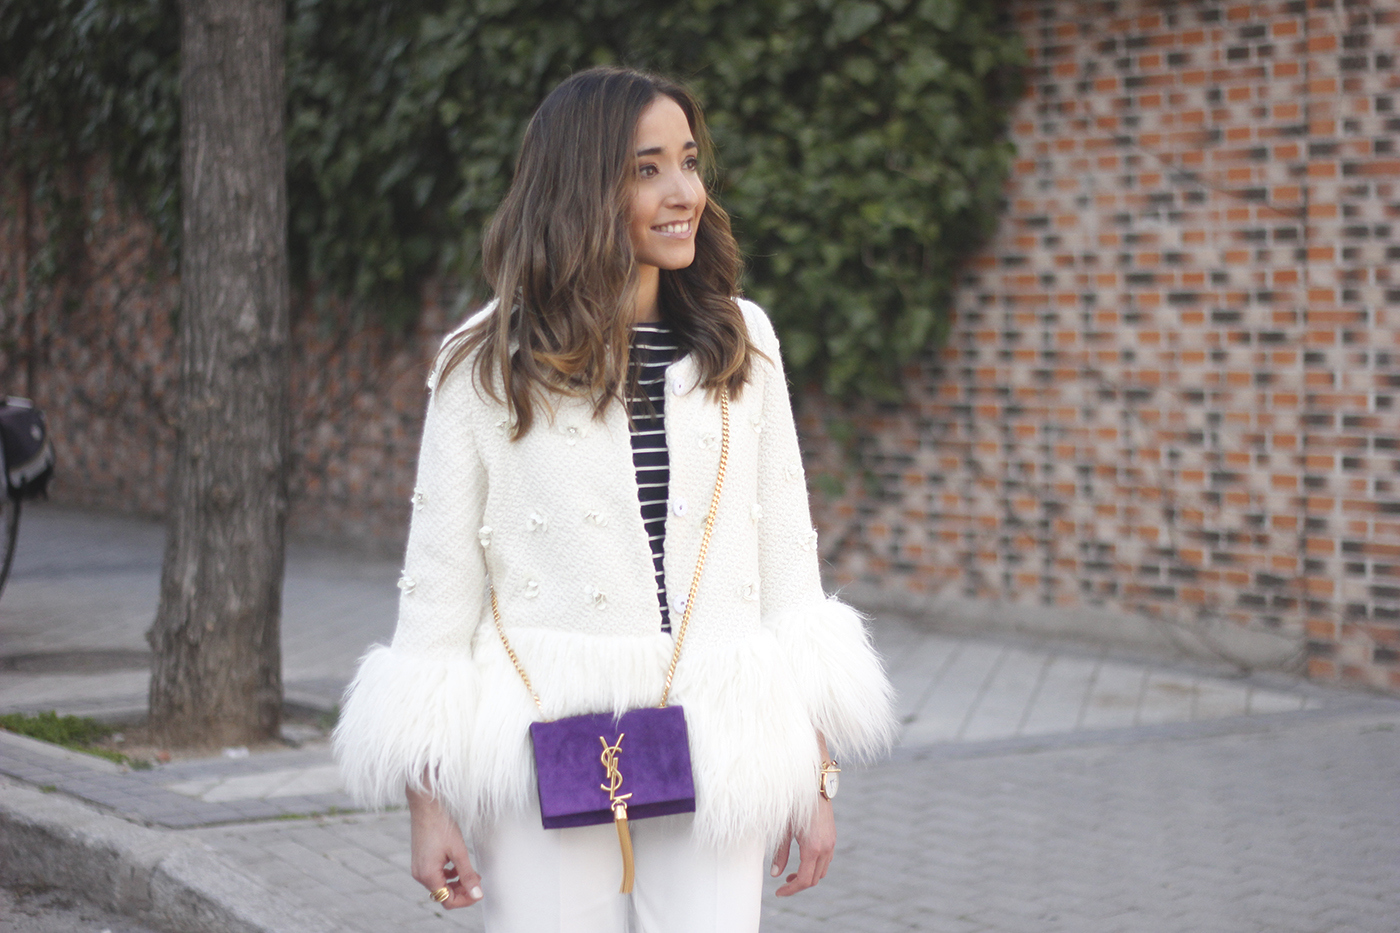 white fur coat ysl purple bag black heels white pants outfit fashion12